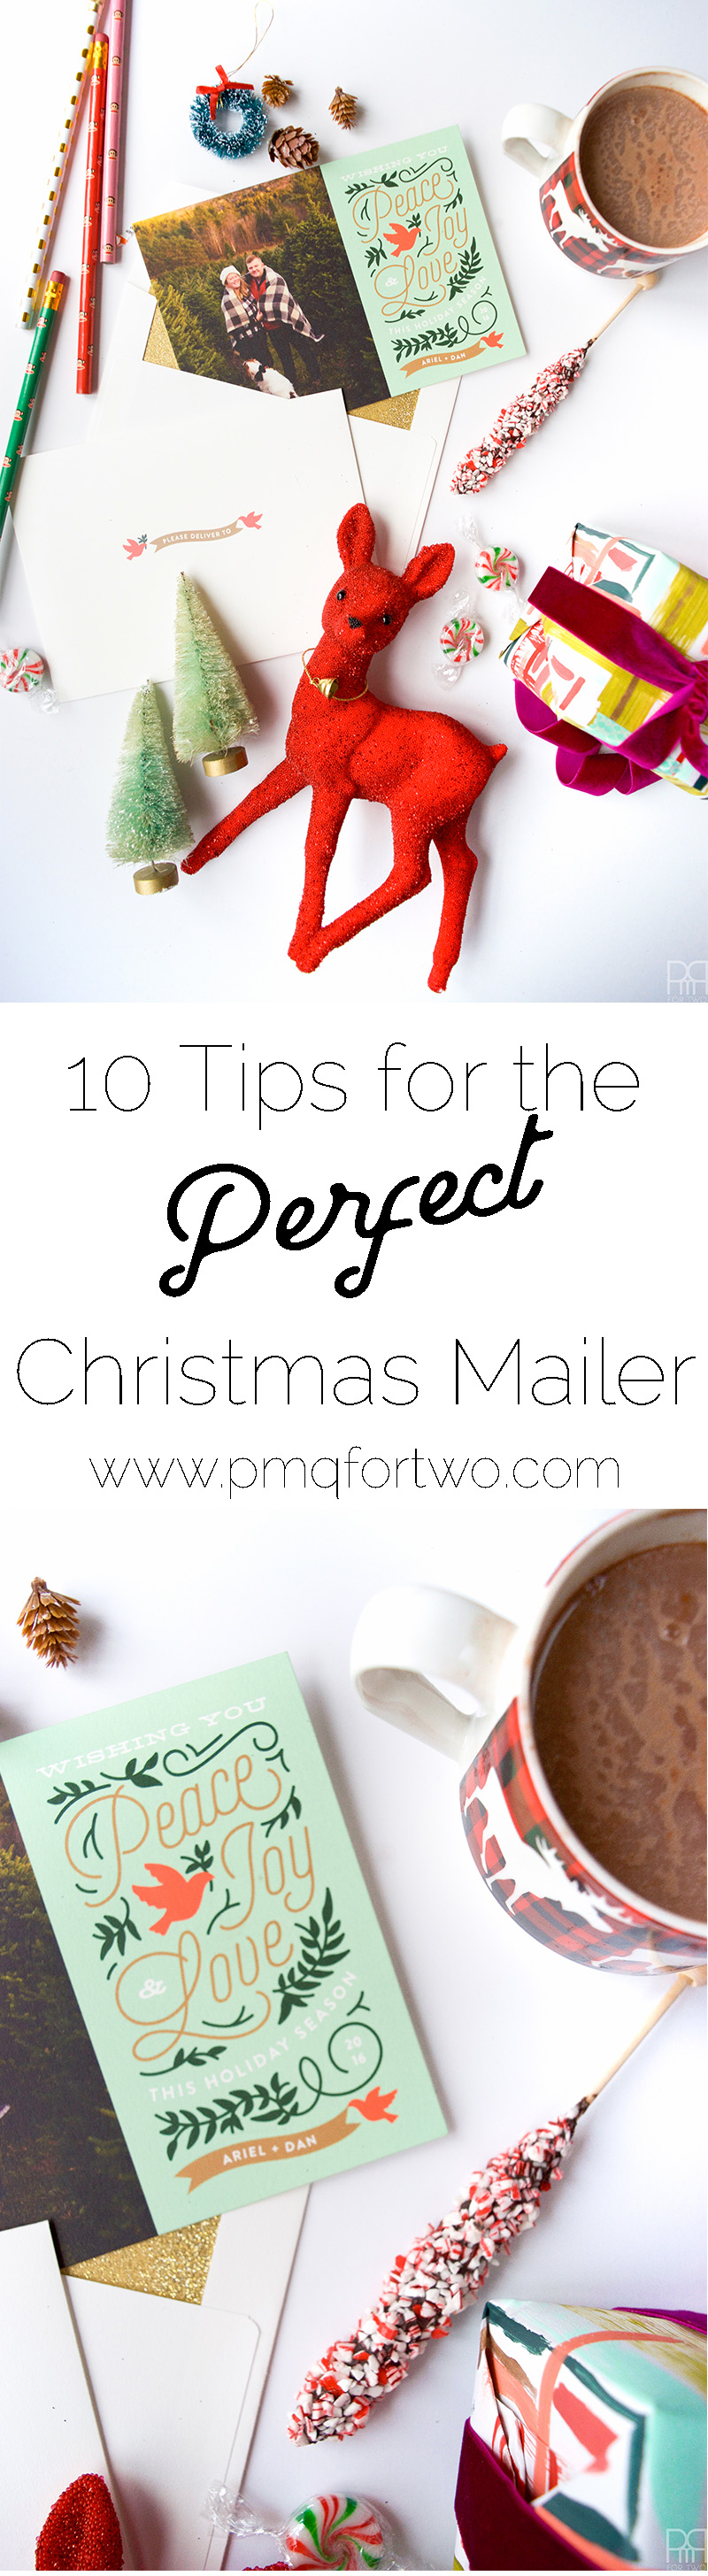 10-tips-for-the-perfect-mailer